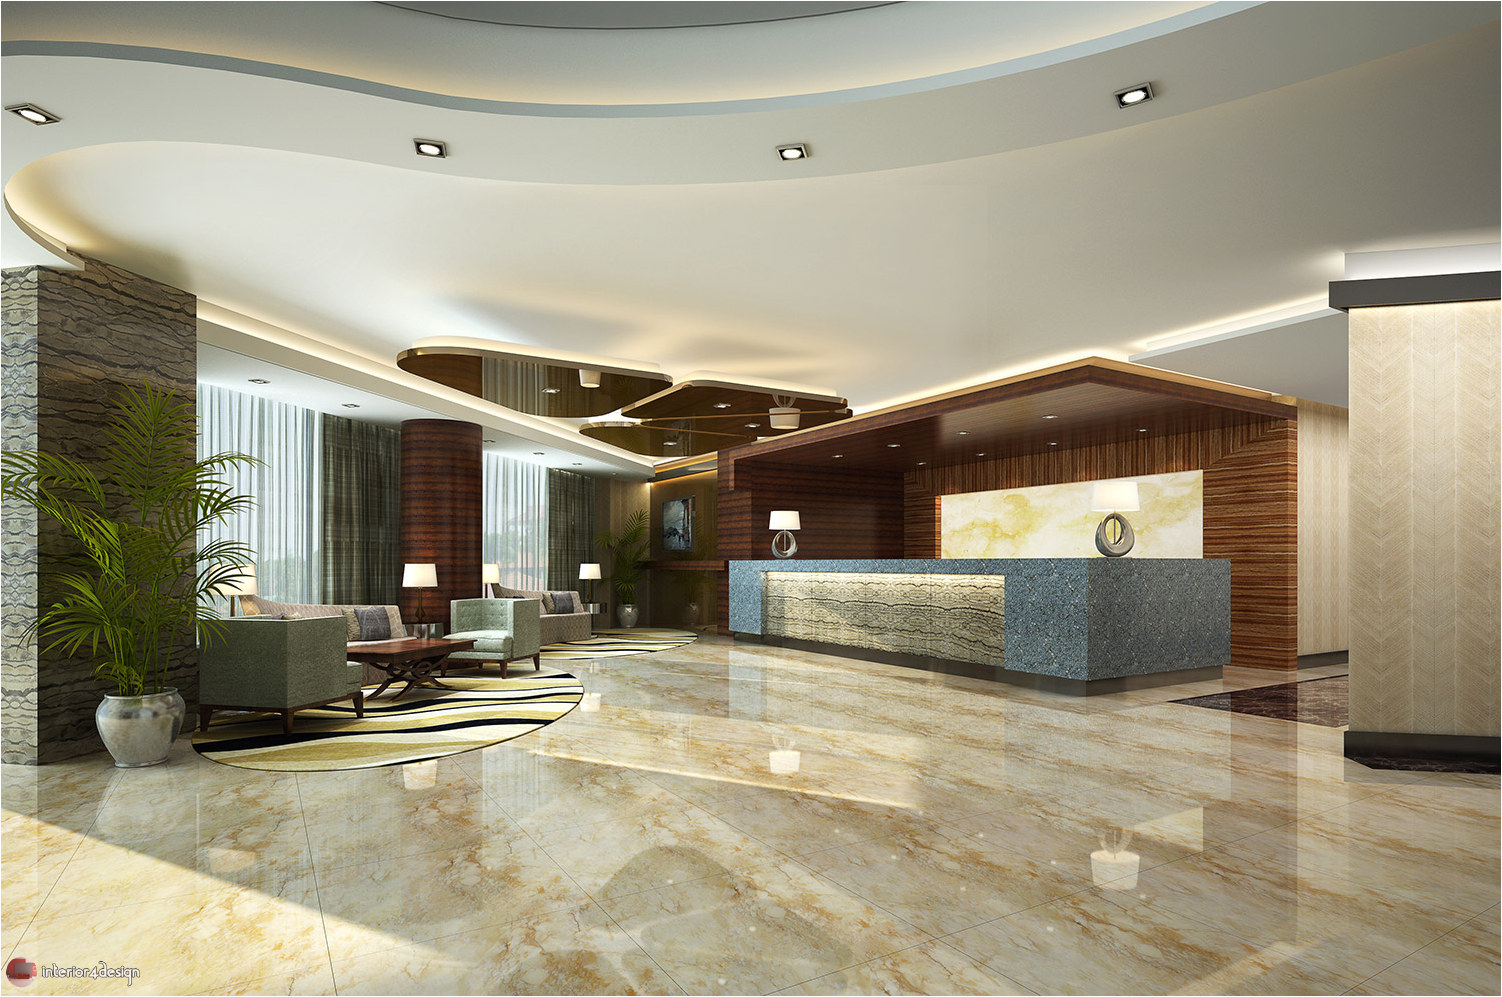 Luxury Home Interior Designs In Dubai That Shows Dubai From Another